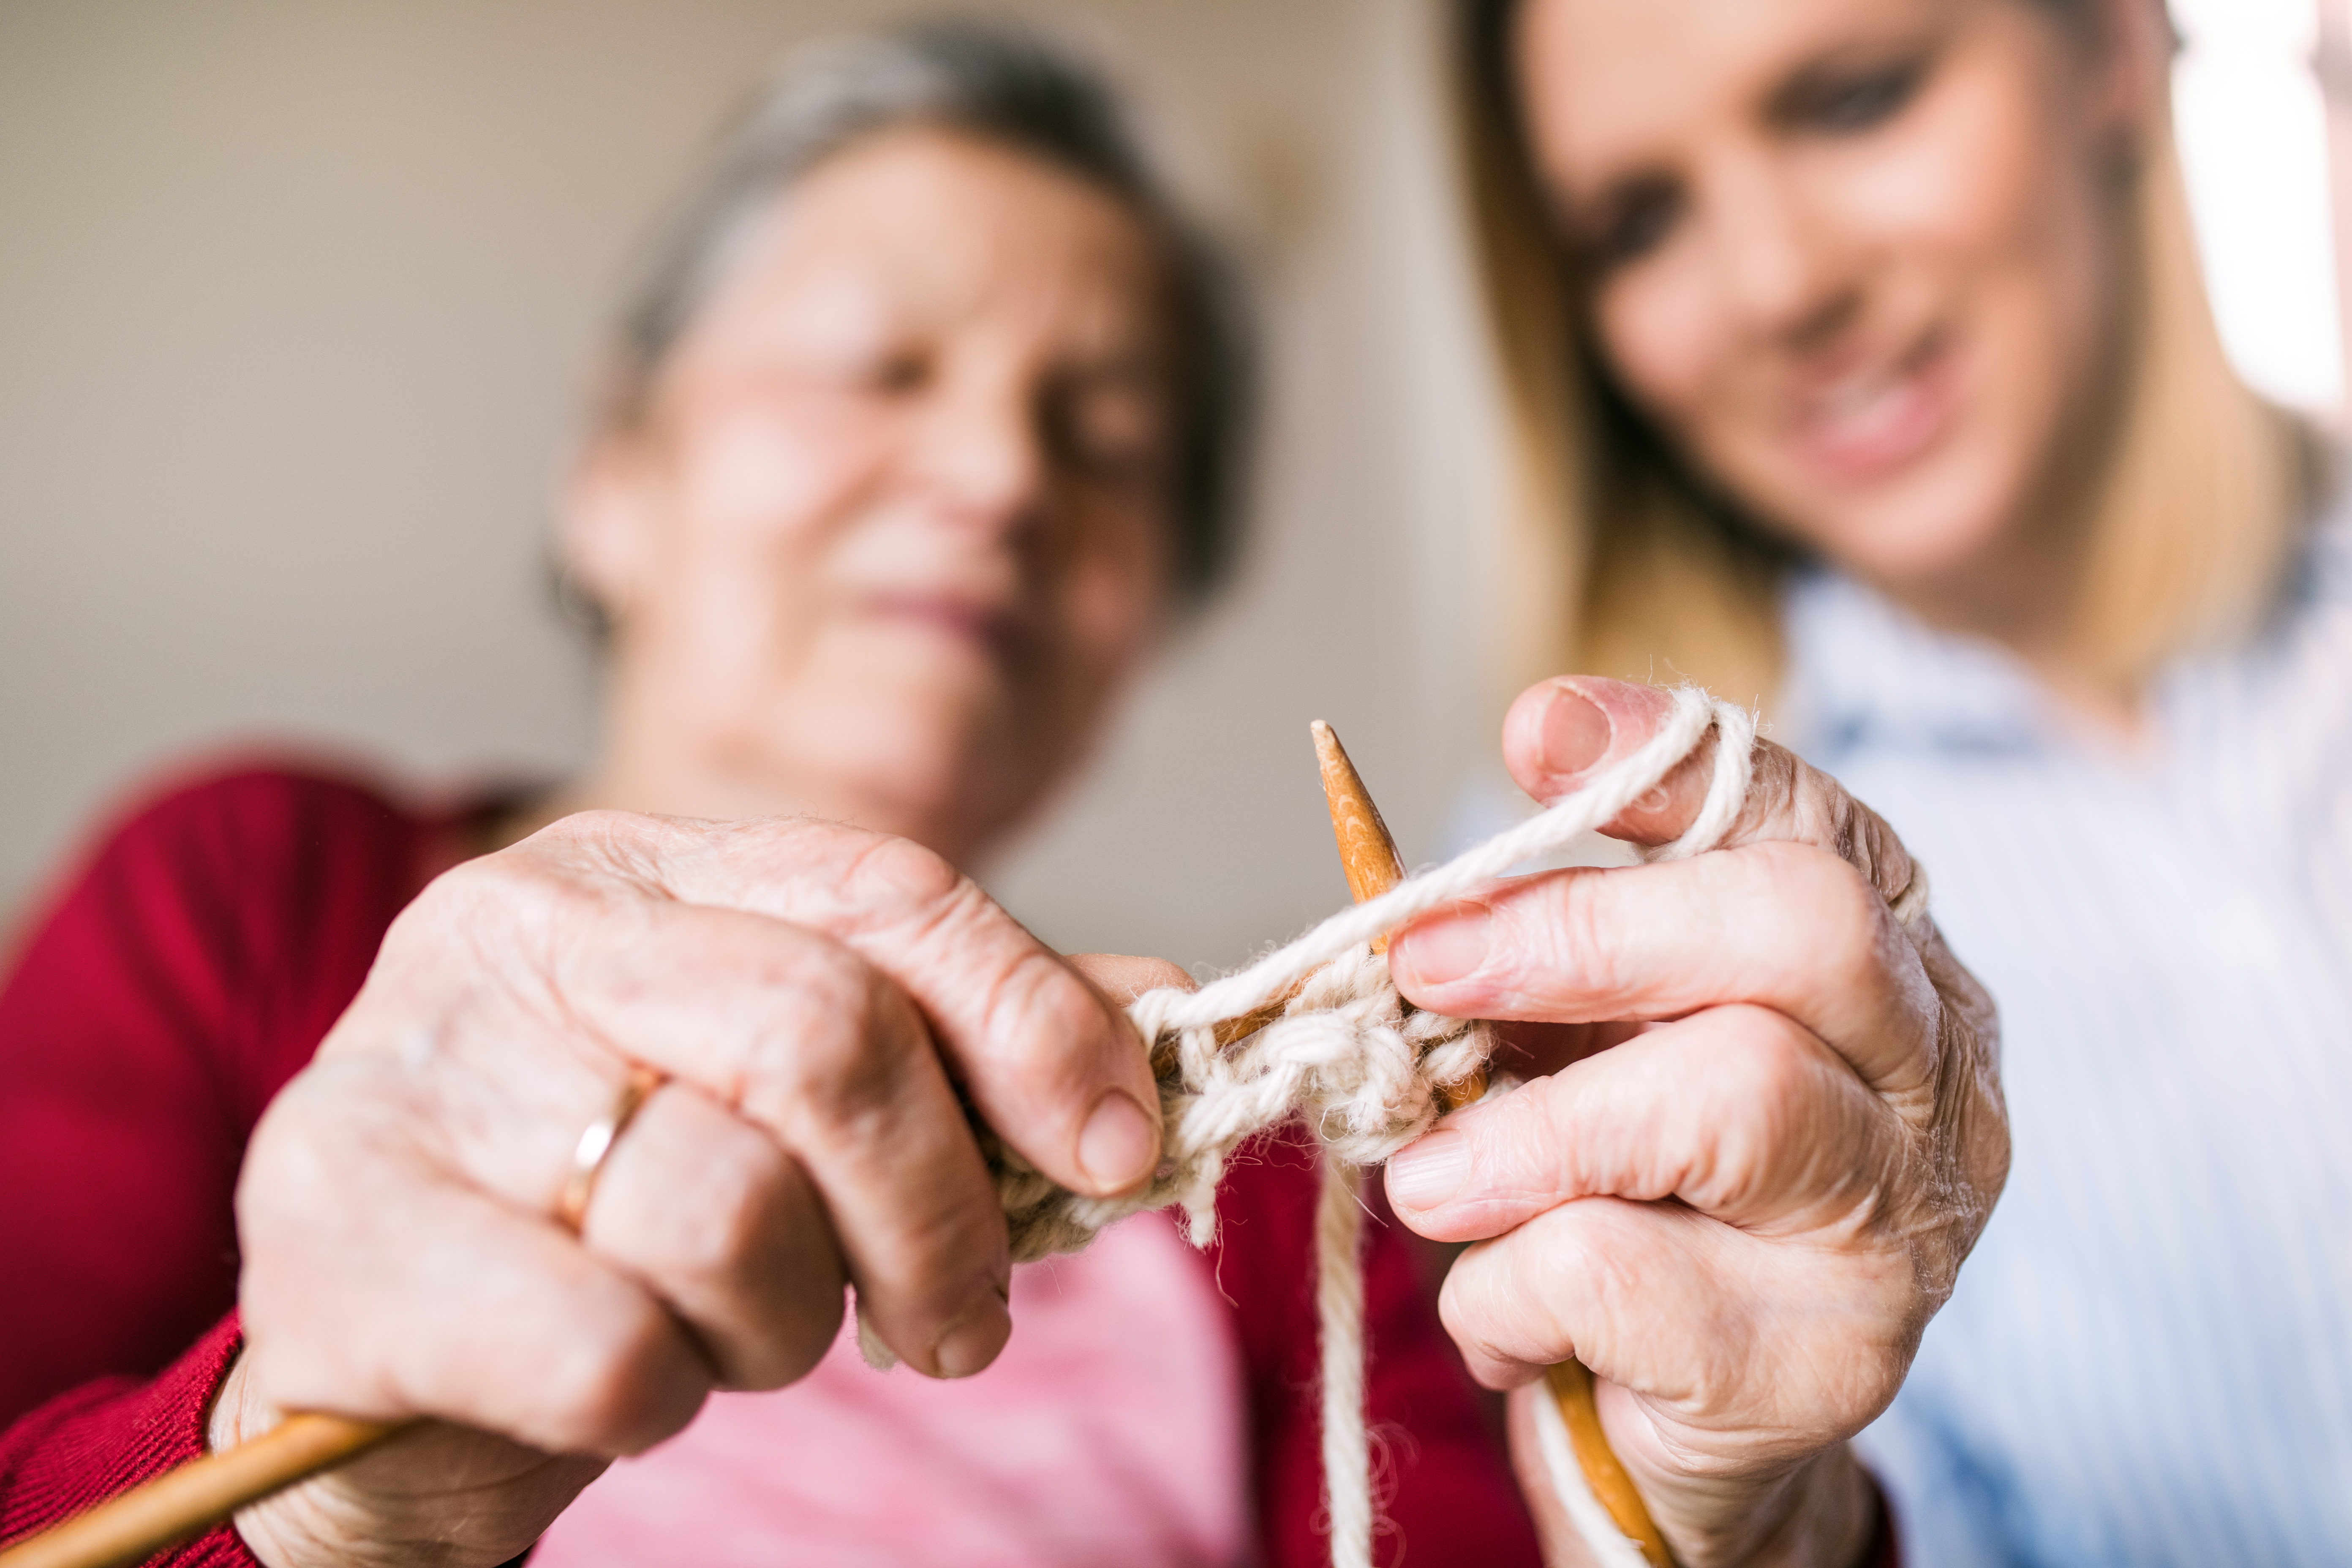 Senior Knitting helps the brain and body